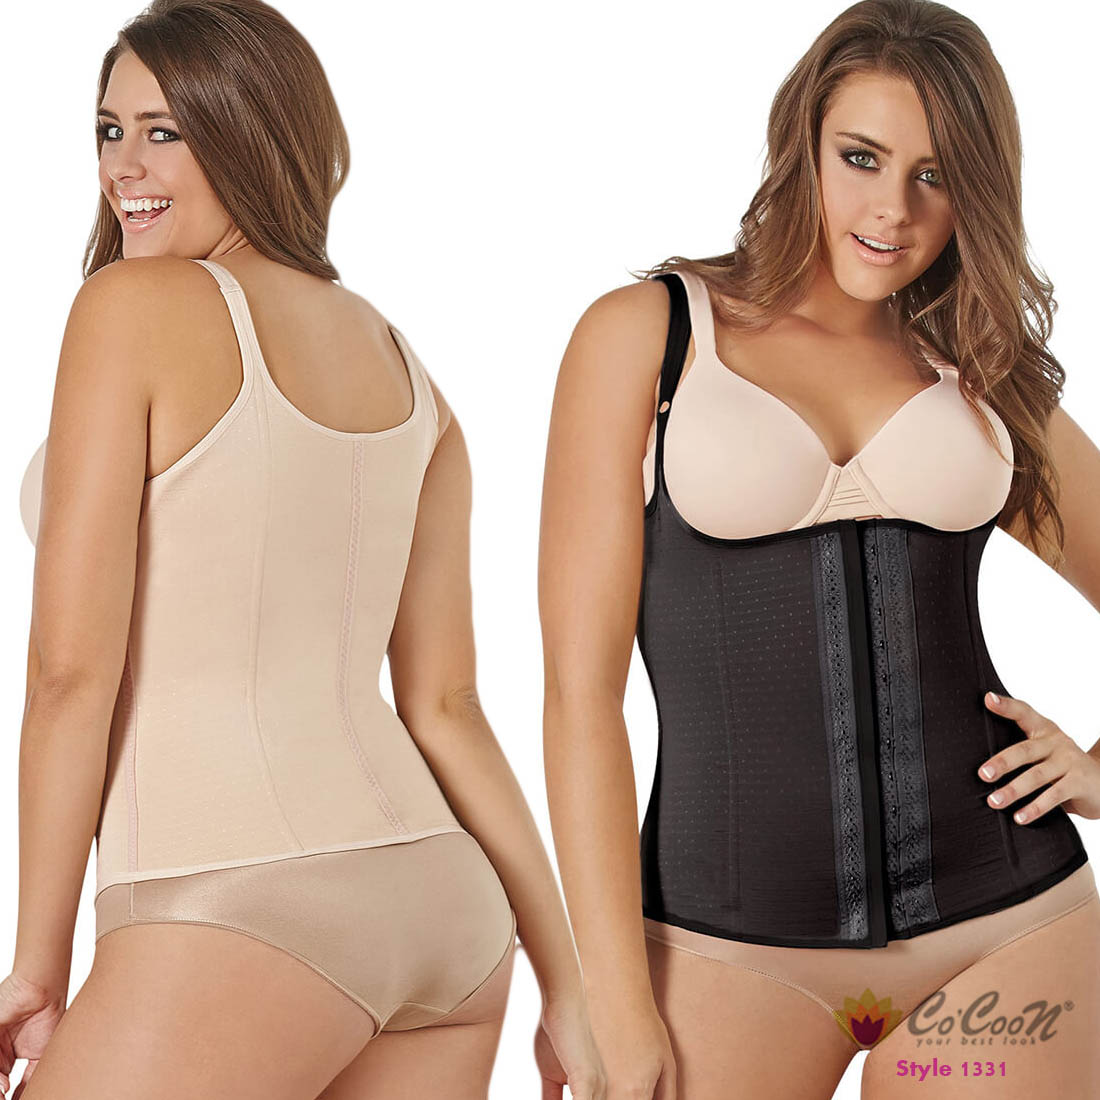 eb16e167acd Cocoon Shapewear Colombian Plus Size Waist Cincher Slimming Tummy Control  Shaper